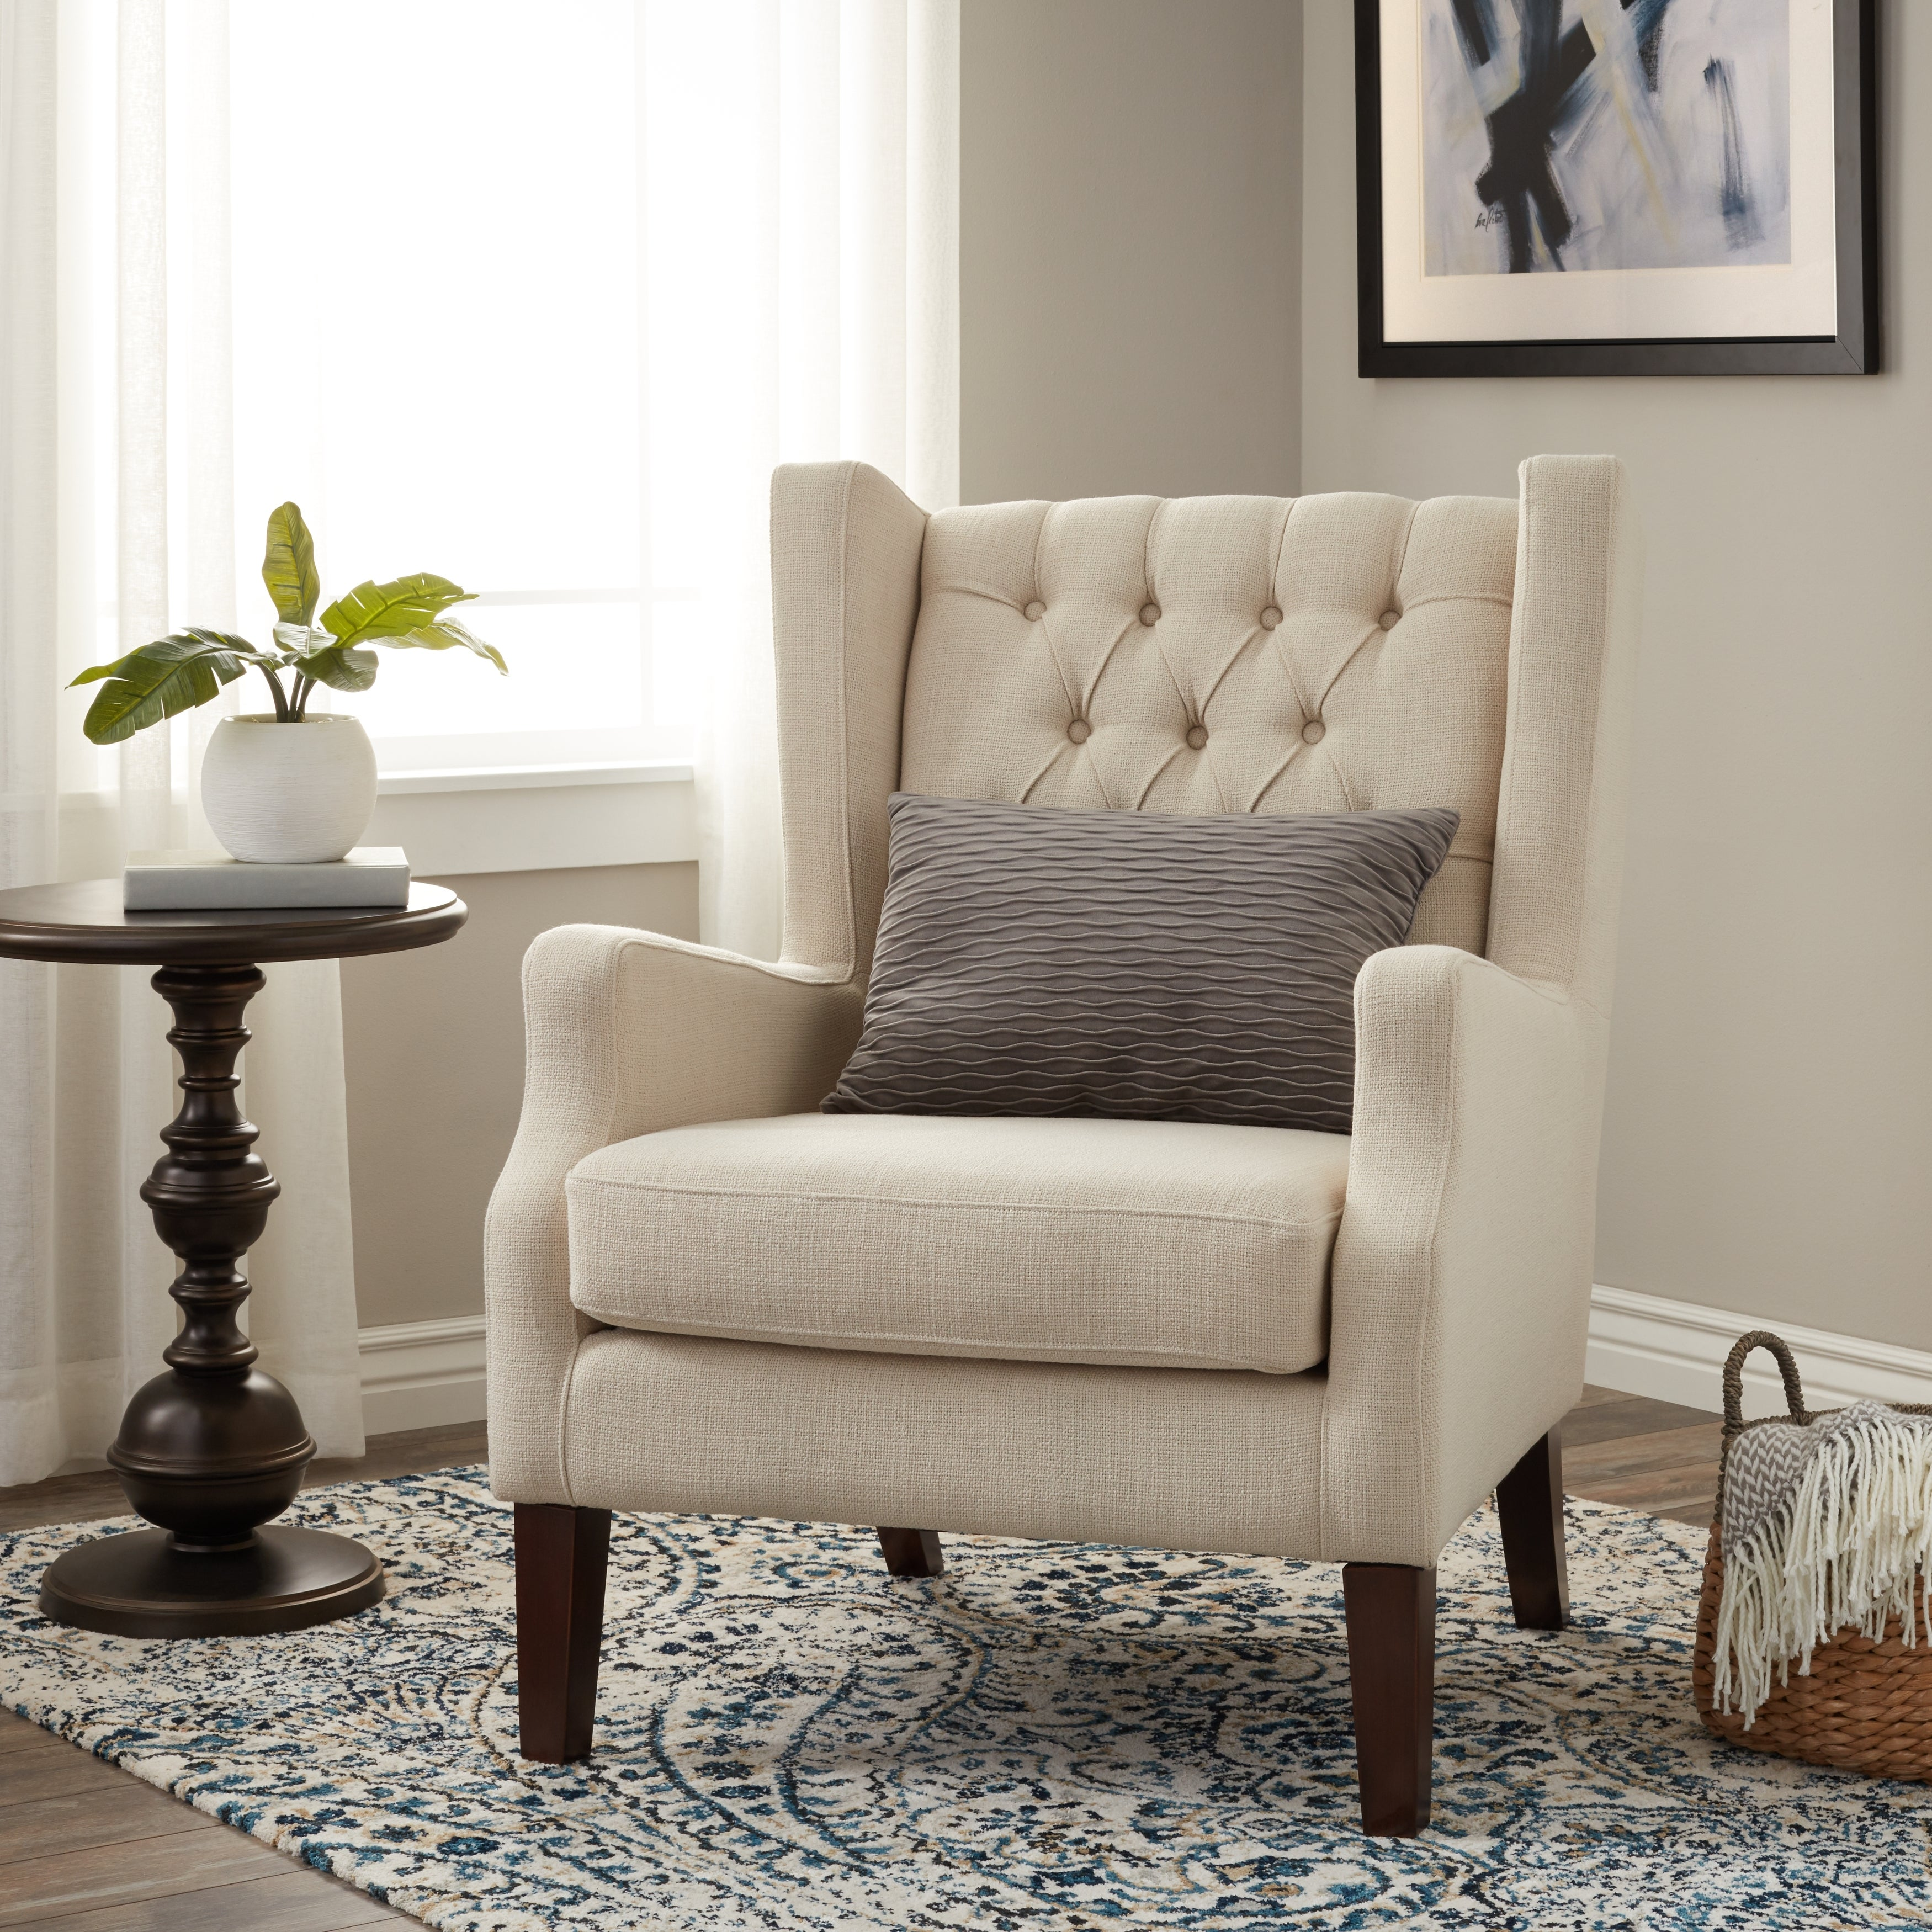 Delicieux Clearance. Stones U0026 Stripes Maxwell Natural Wing Chair